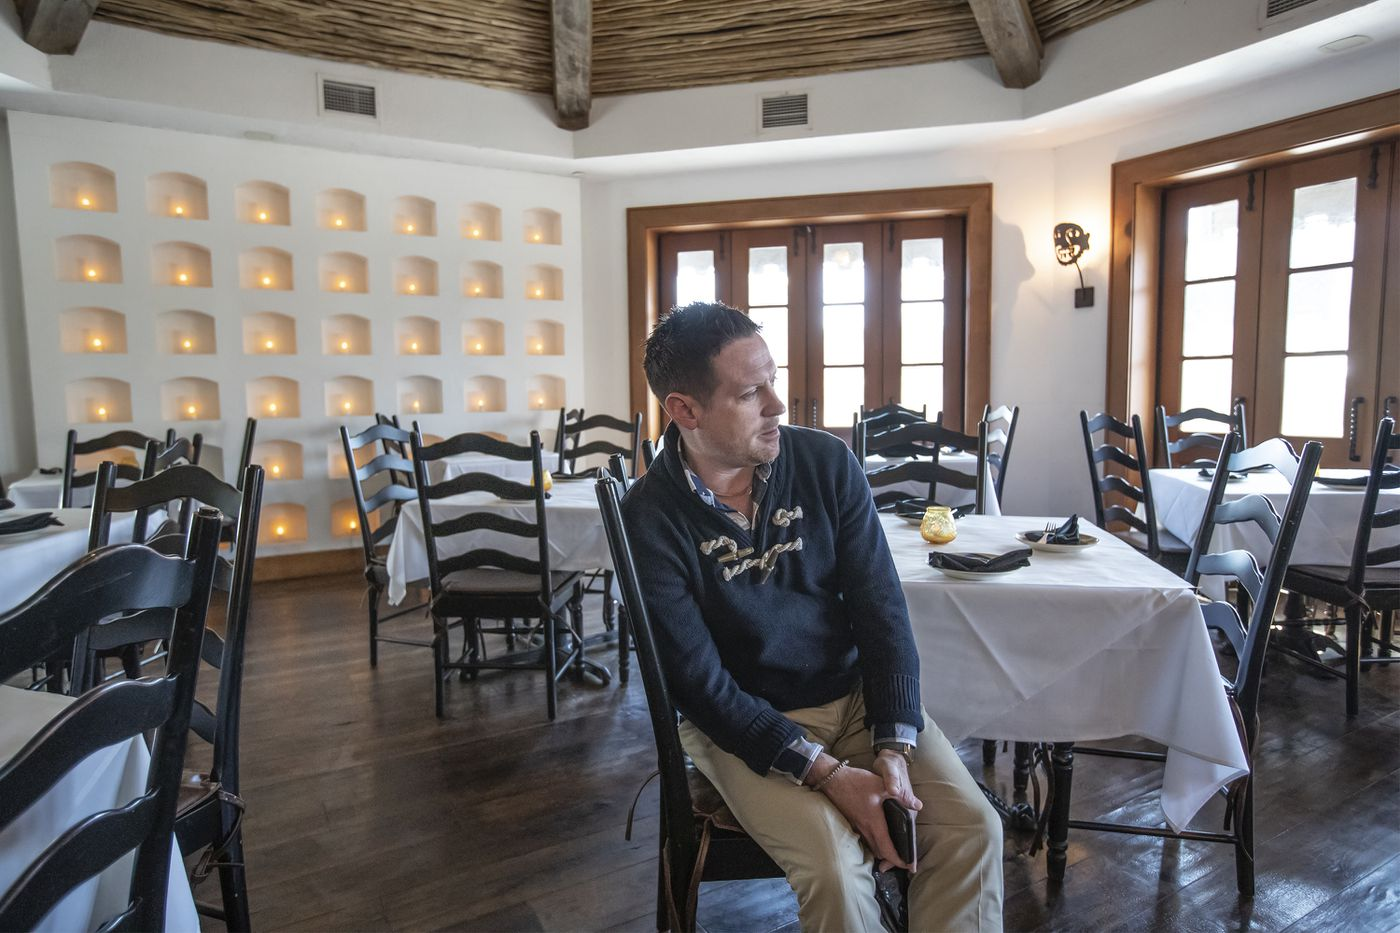 Bar manager Paul Moran, center, sits by himself in an empty Besito Restaurant in the Suburban Square shopping center in Montgomery County, Pa., on Sunday March 15, 2020.